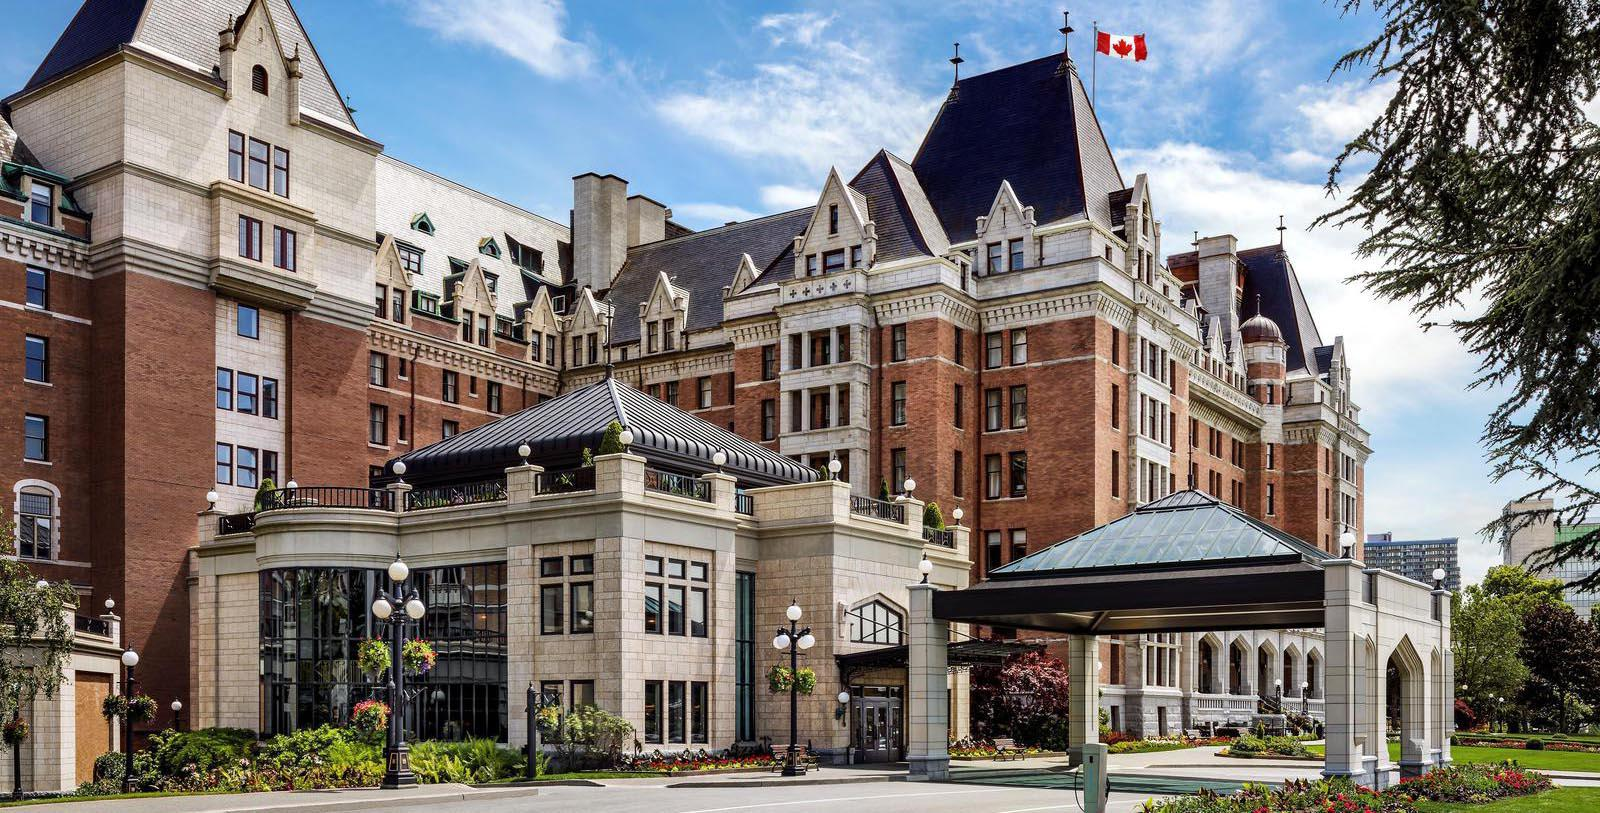 Image of hotel exterior Fairmont Empress, 1908, Member of Historic Hotels Worldwide, in Victoria, British Columbia, Canada, Overview